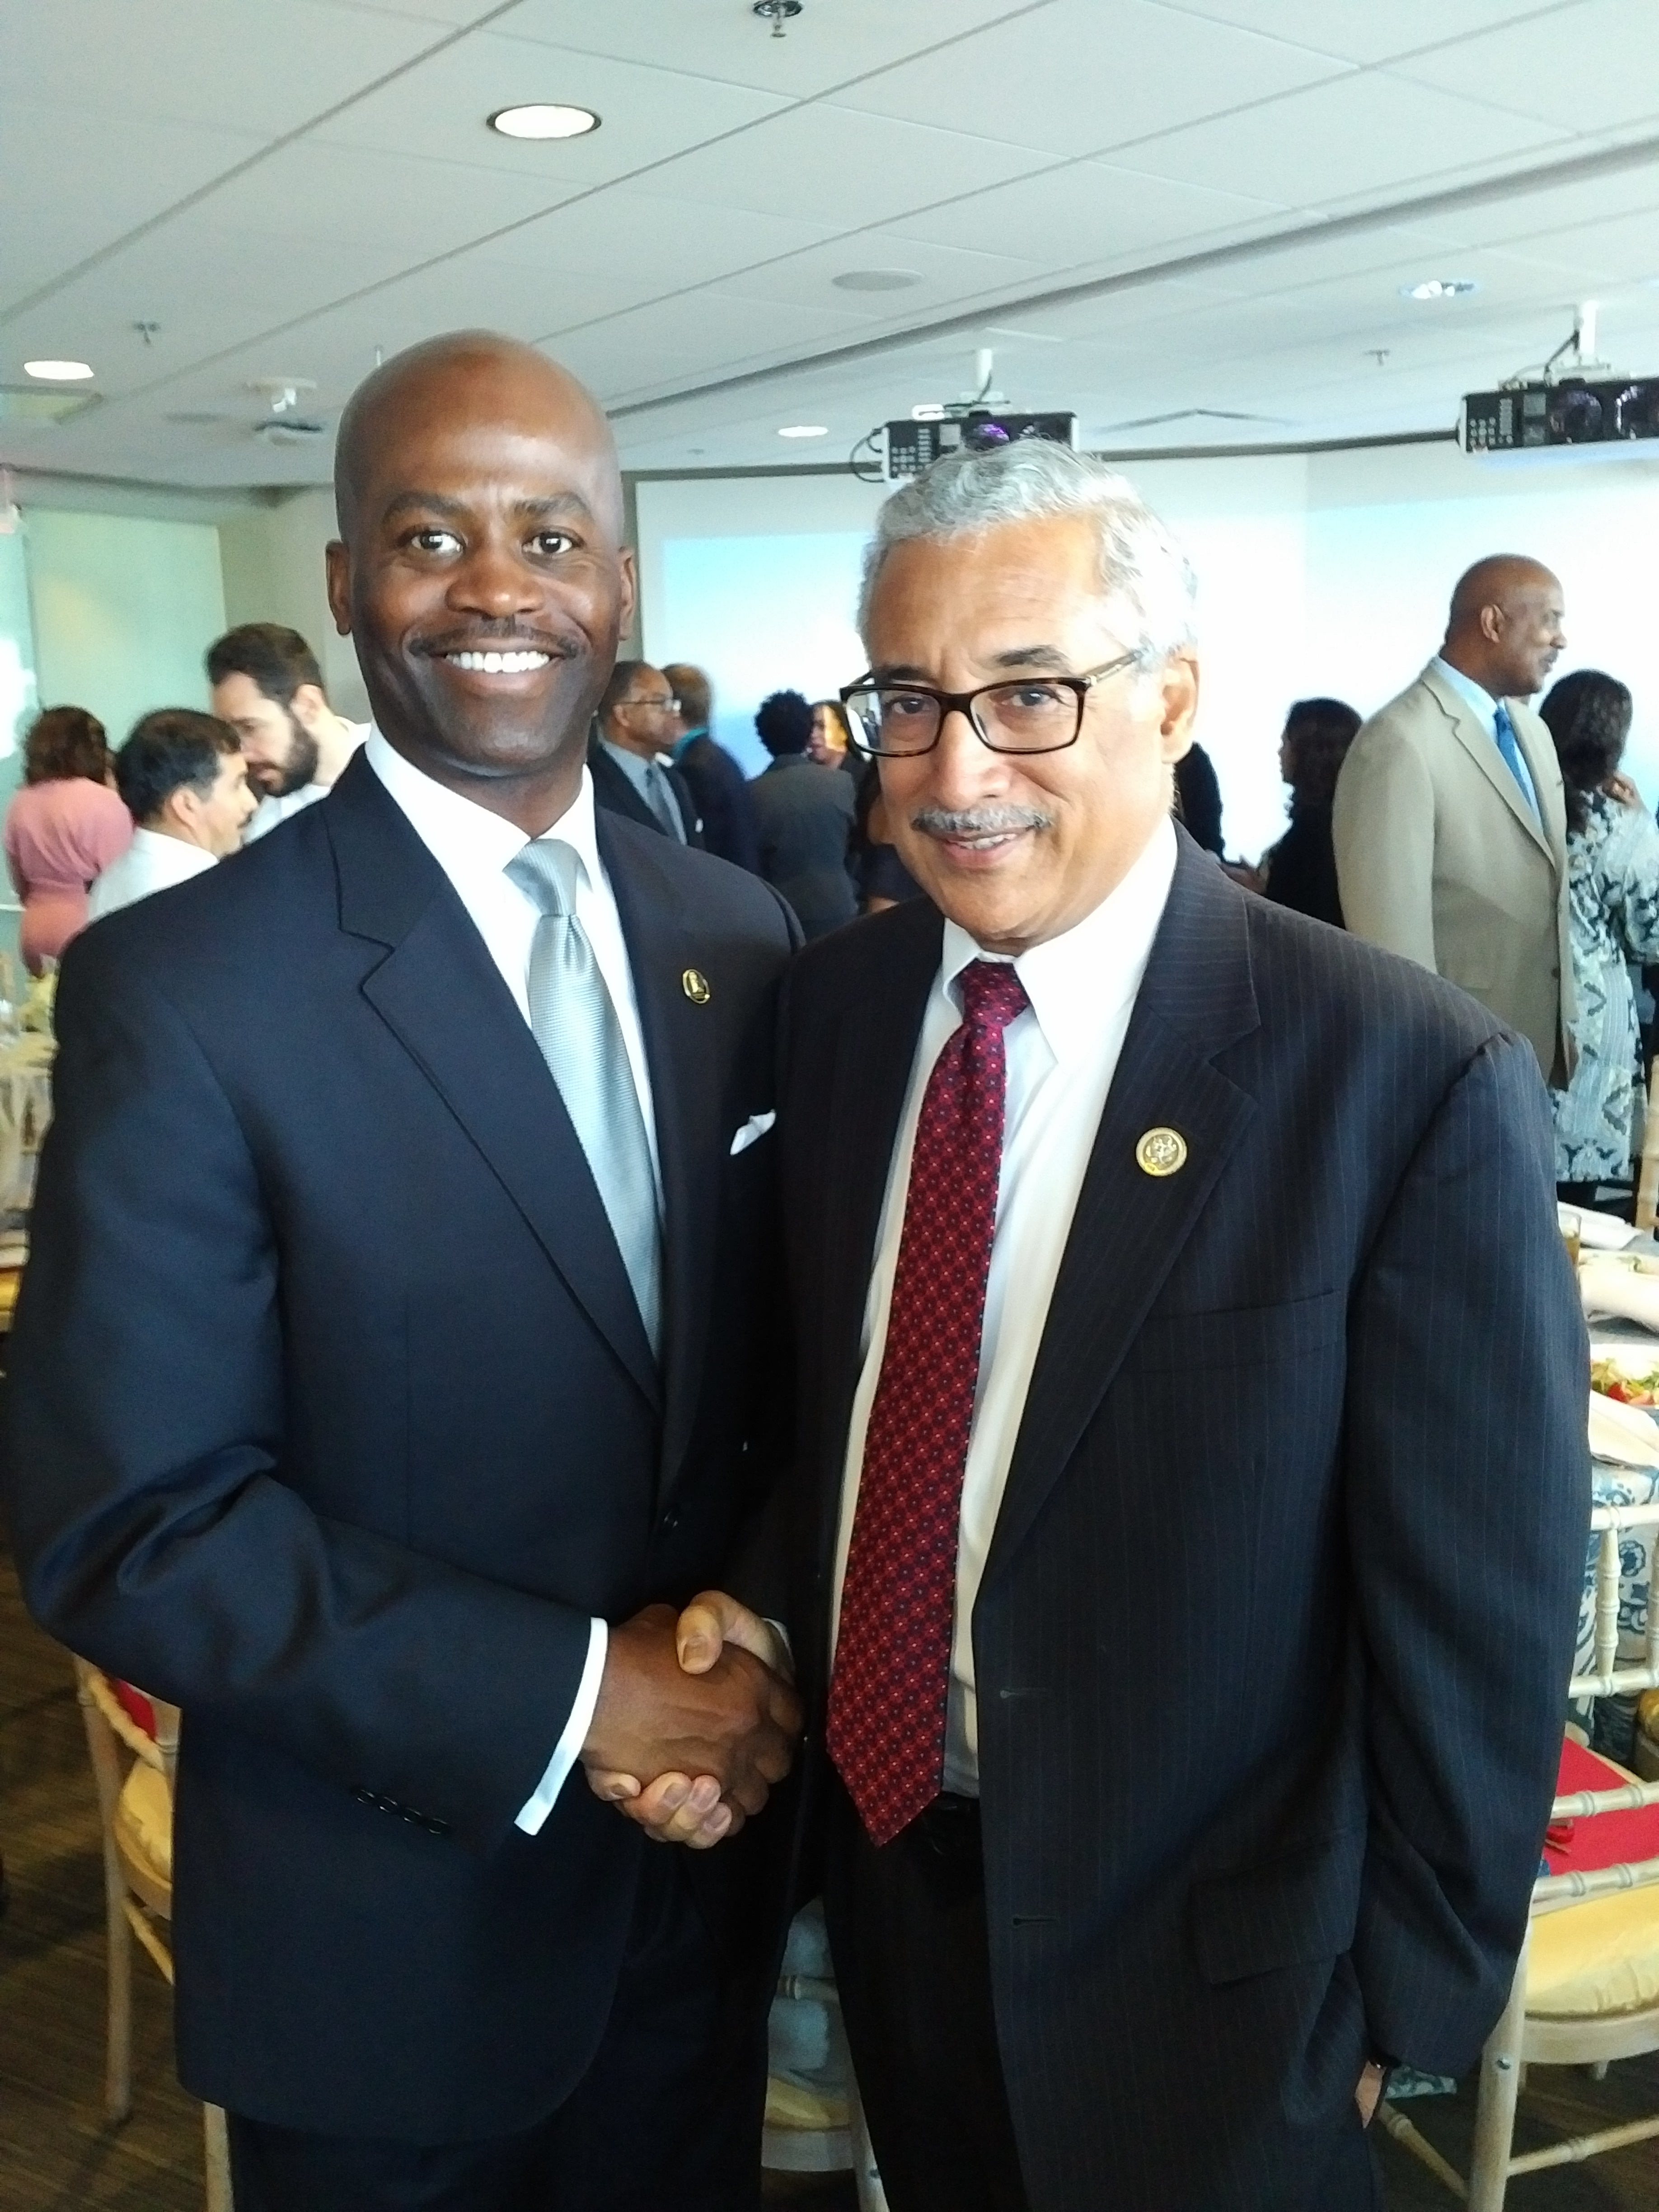 President Jenkins with U.S. Rep. Bobby Scott